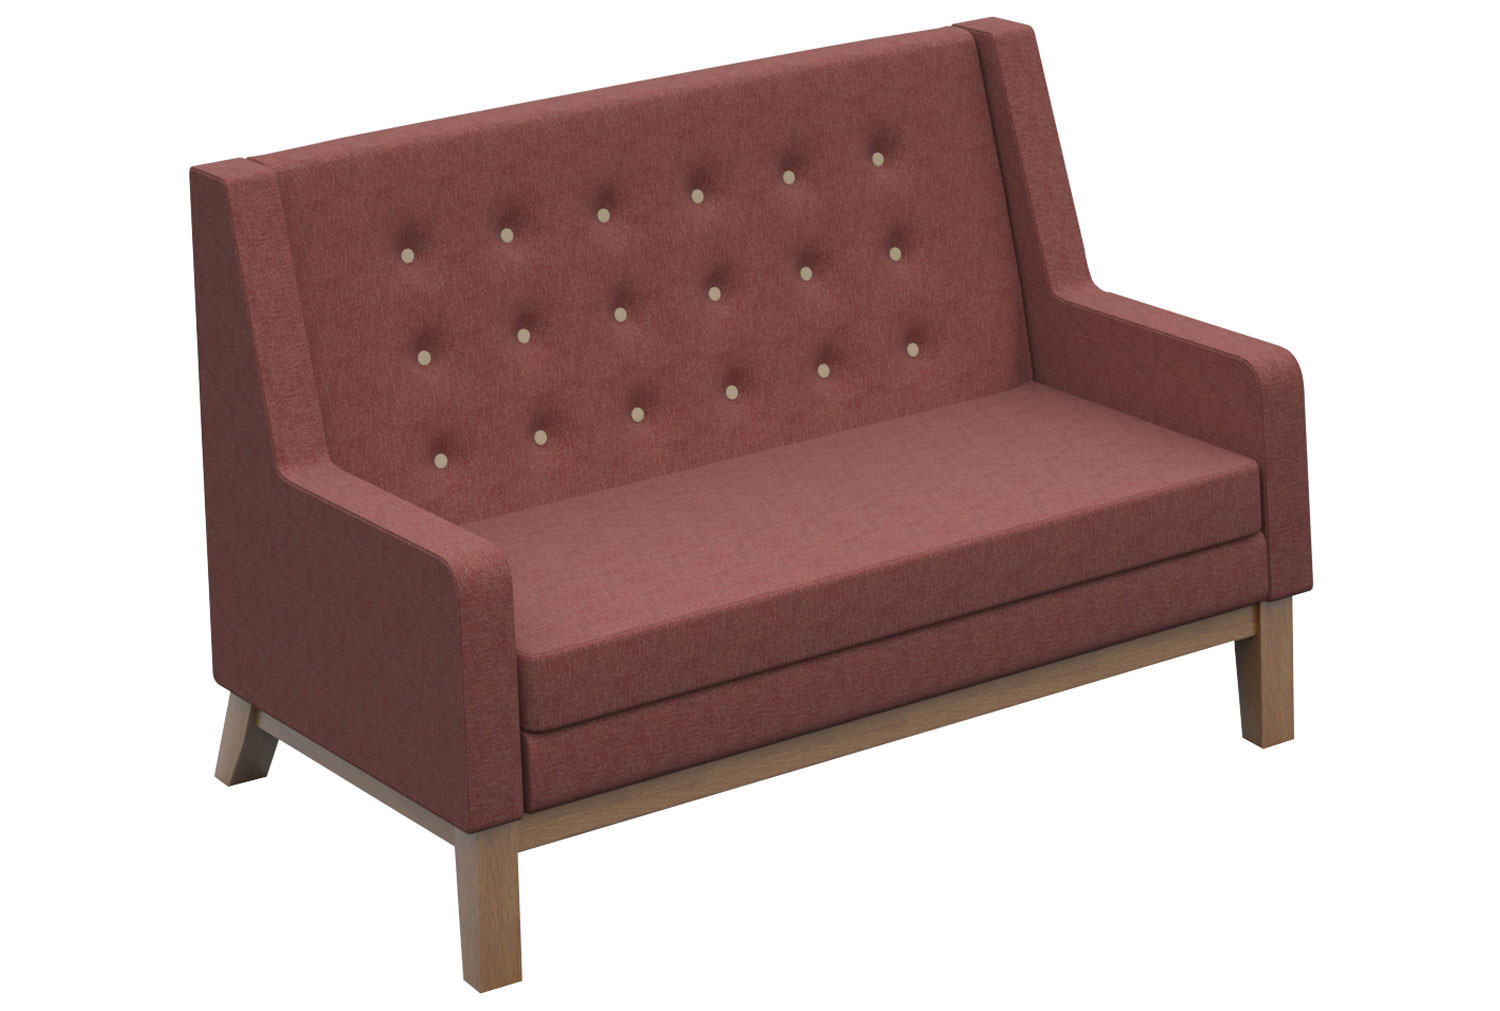 Lima Low Two Seater Sofa